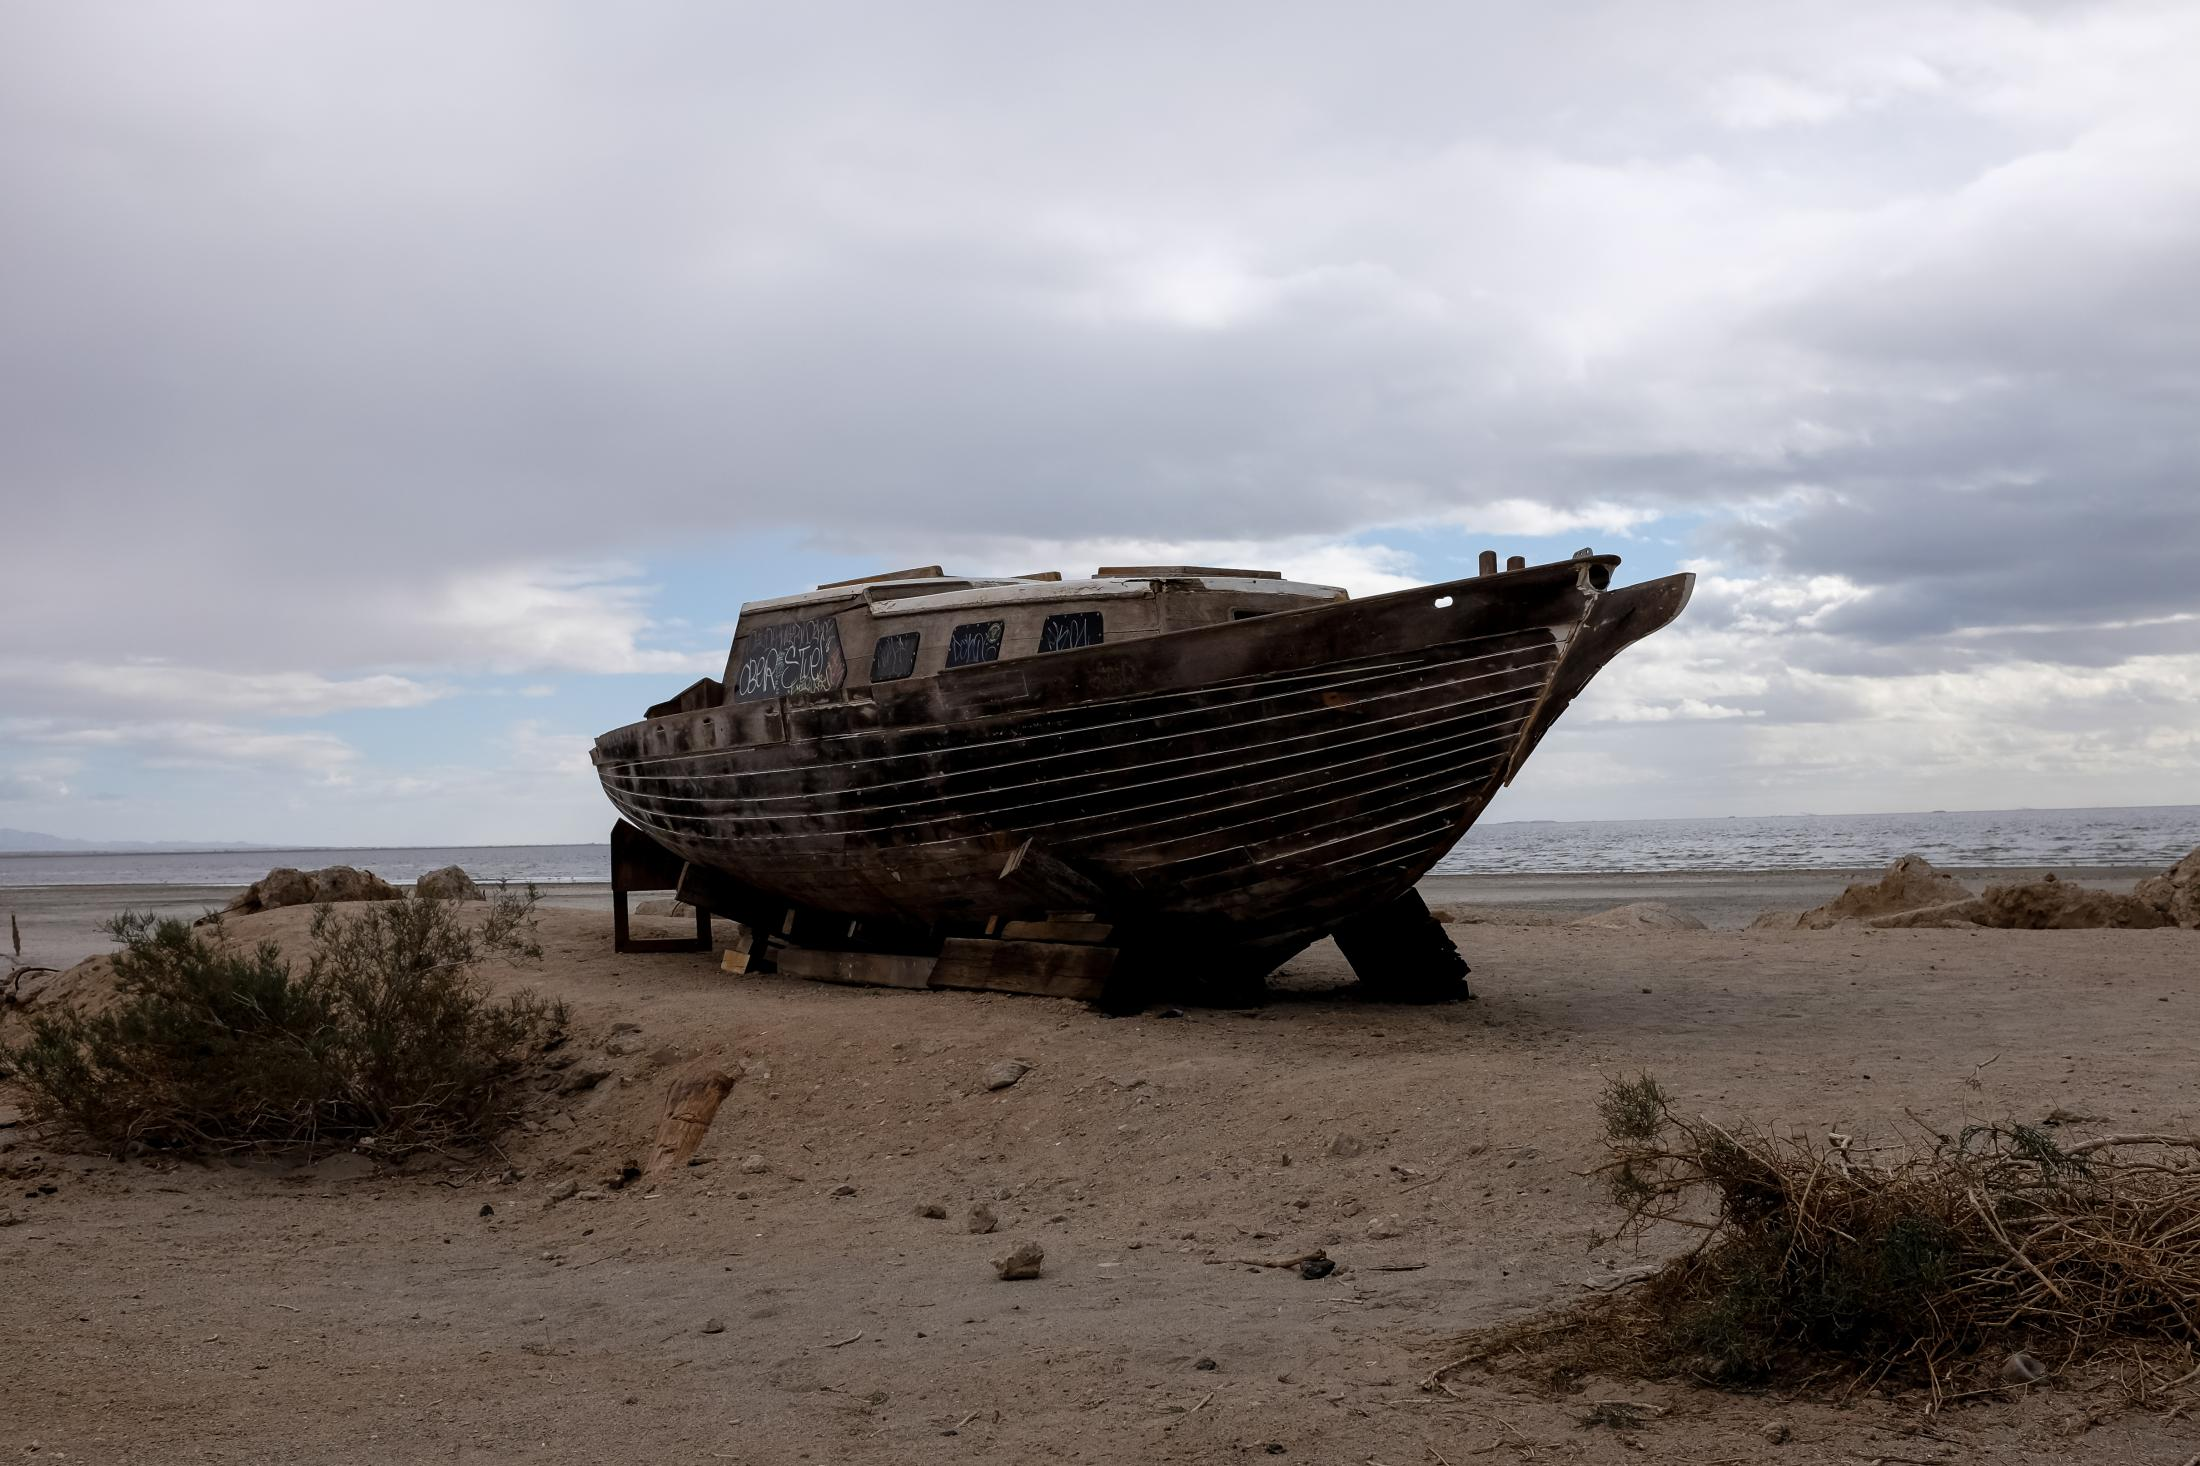 11/27/16-California - The remains of a sailboat left docked on The Salton Sea's desert beaches, once populated with summer vacation homes and resorts. It is mostly abandoned with just memories of the past.